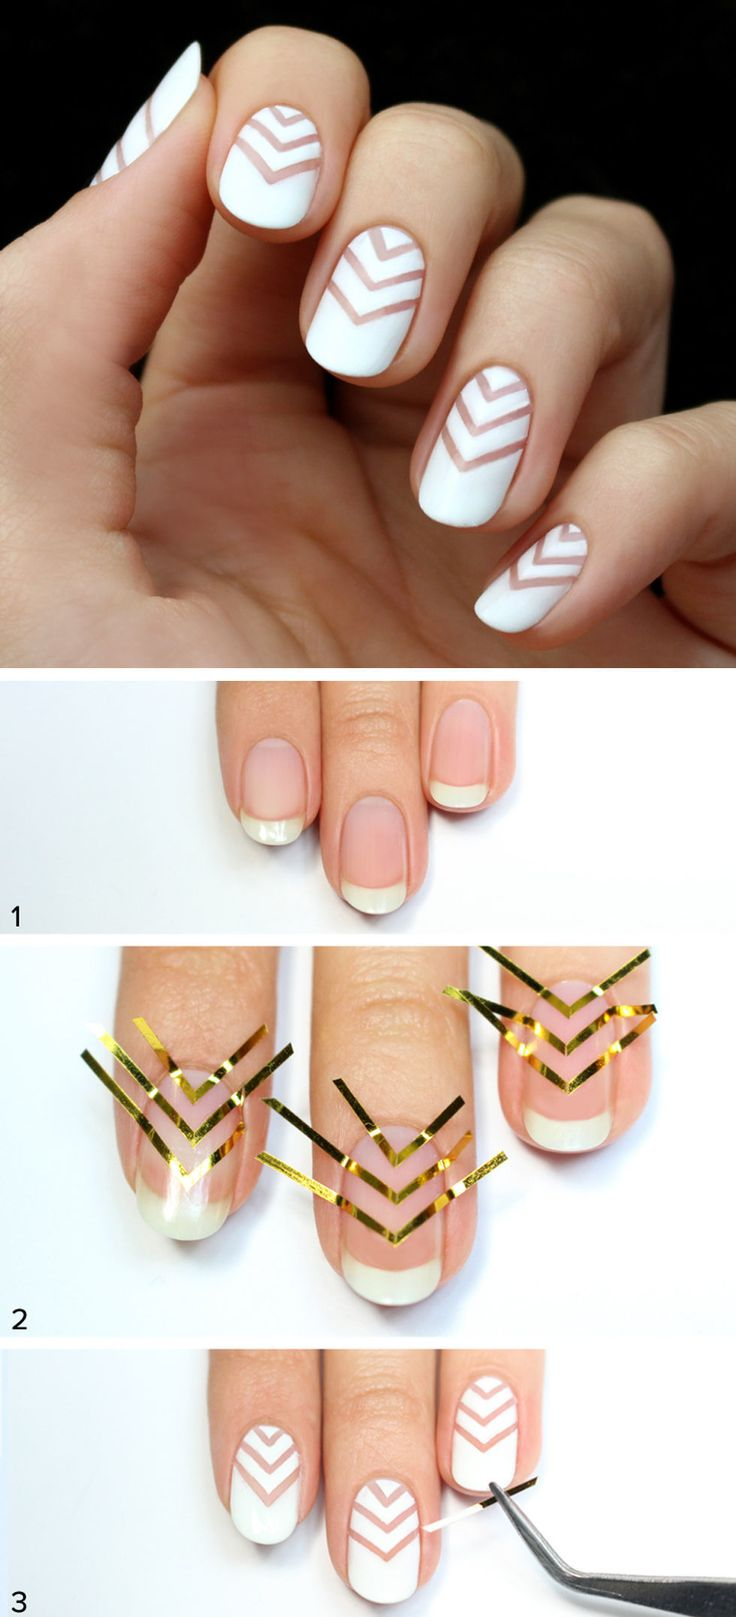 590 best nail art beginner images on pinterest nail design nail 4 nail designs that seem tricky but arent solutioingenieria Gallery